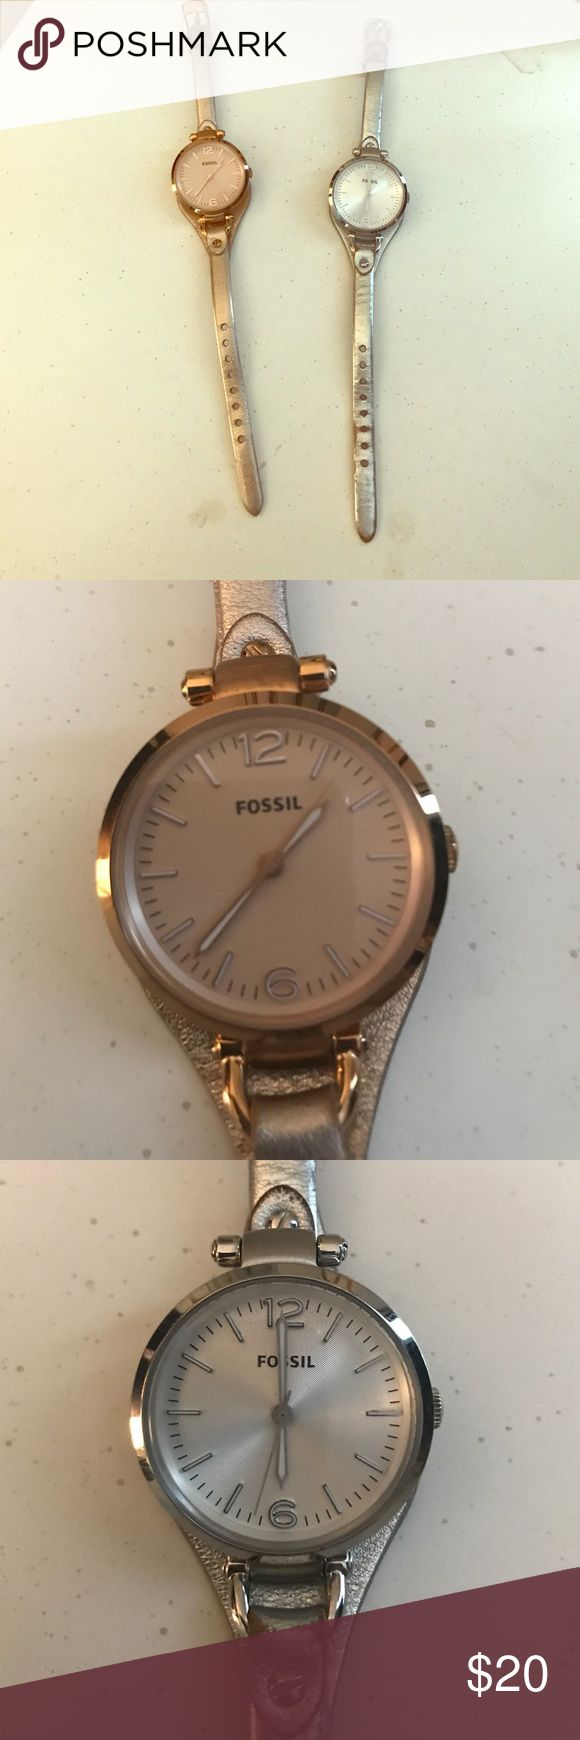 Fossil watches Fossil watches with leather bands. One rose gold one silver. They do have wear on the watch bands and will need new batteries Fossil Accessories Watches